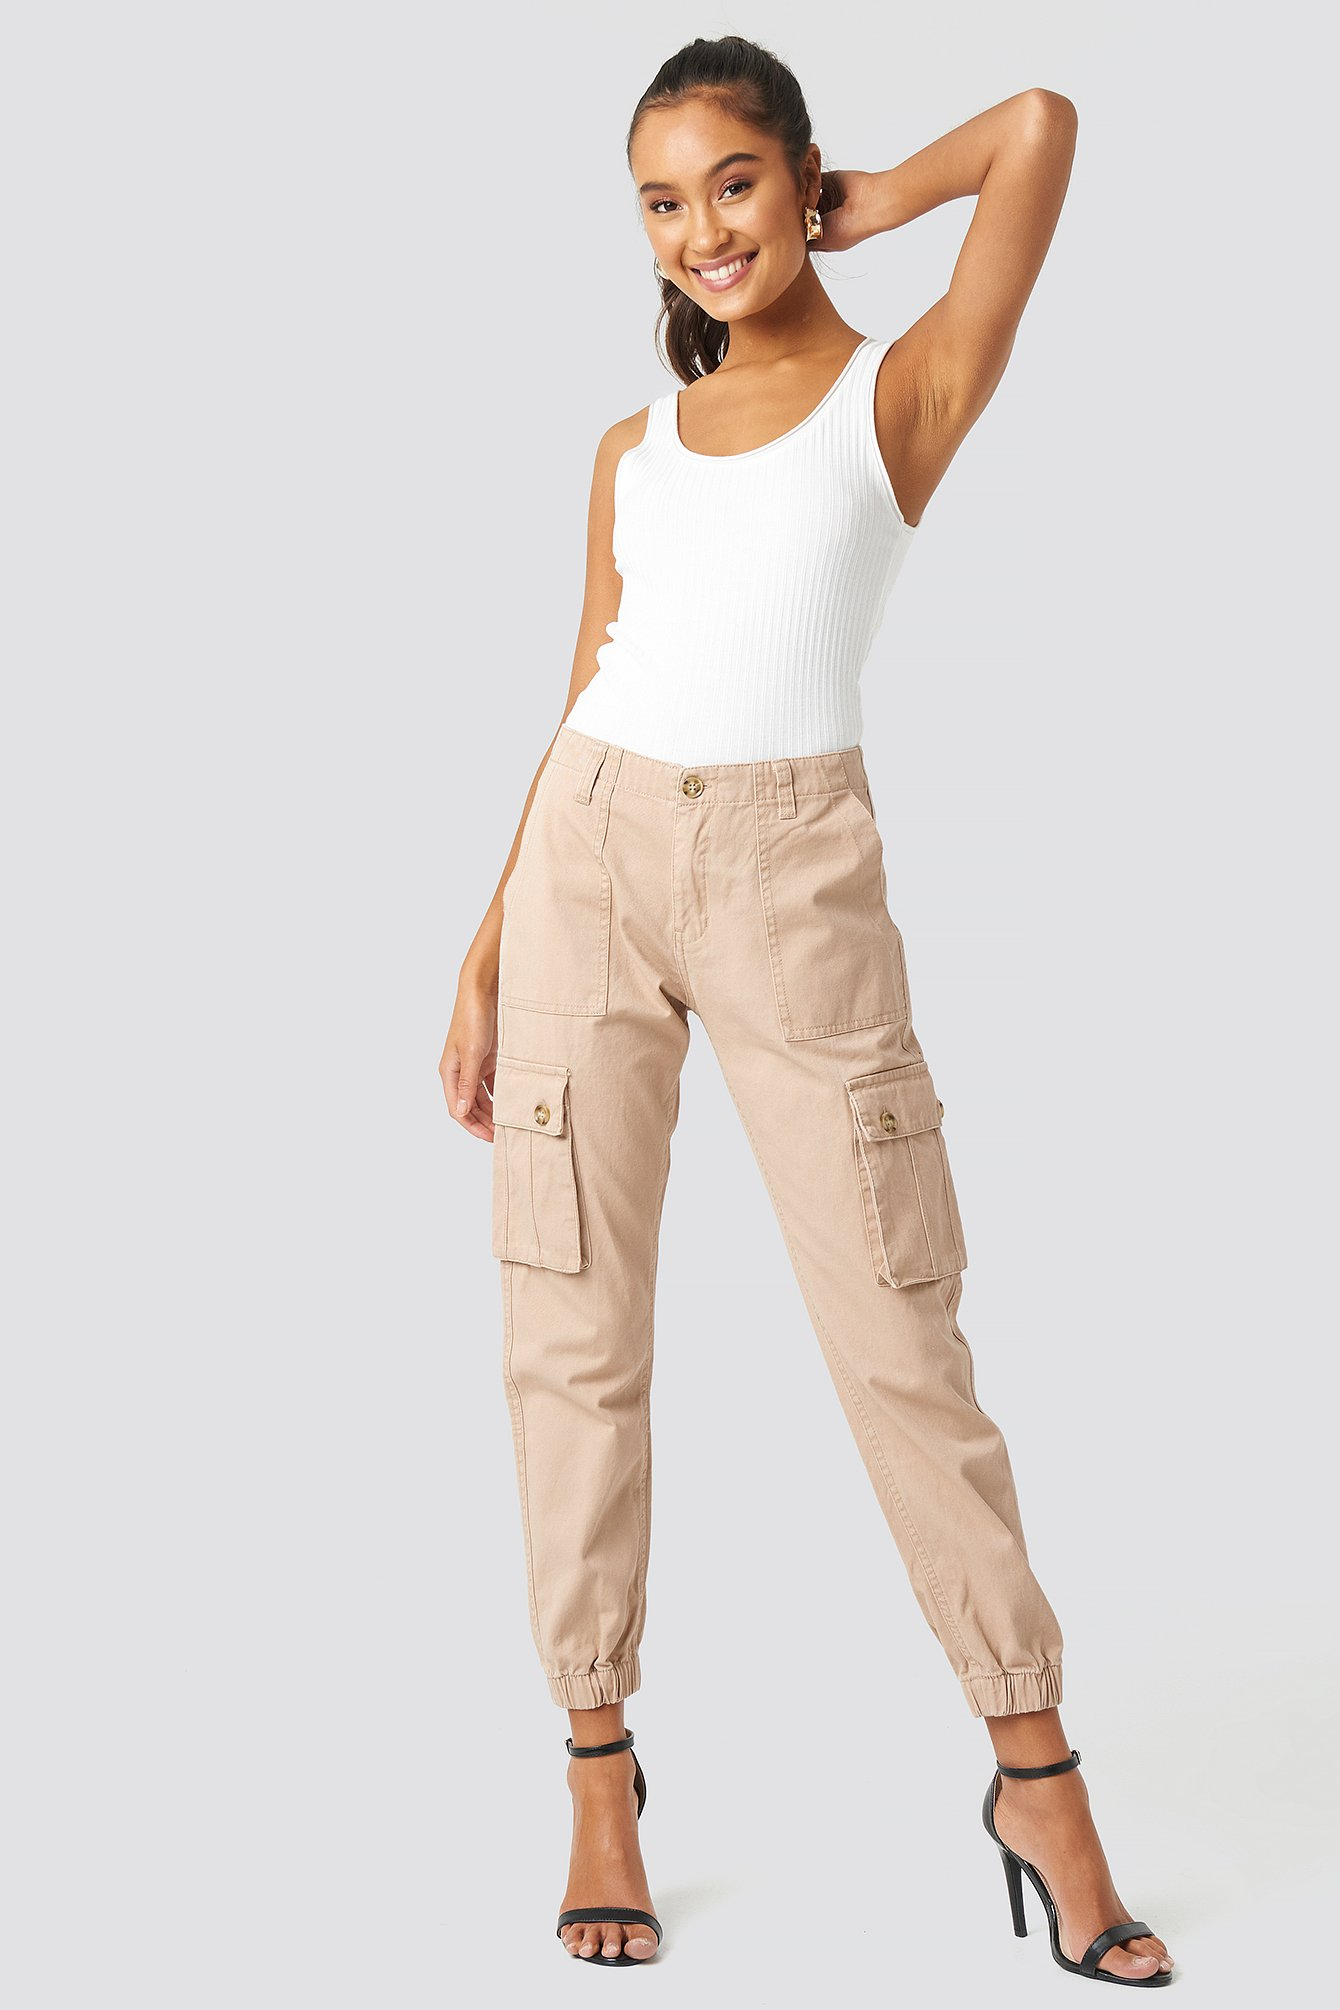 sisters point -  Leca Pants - Beige,Nude